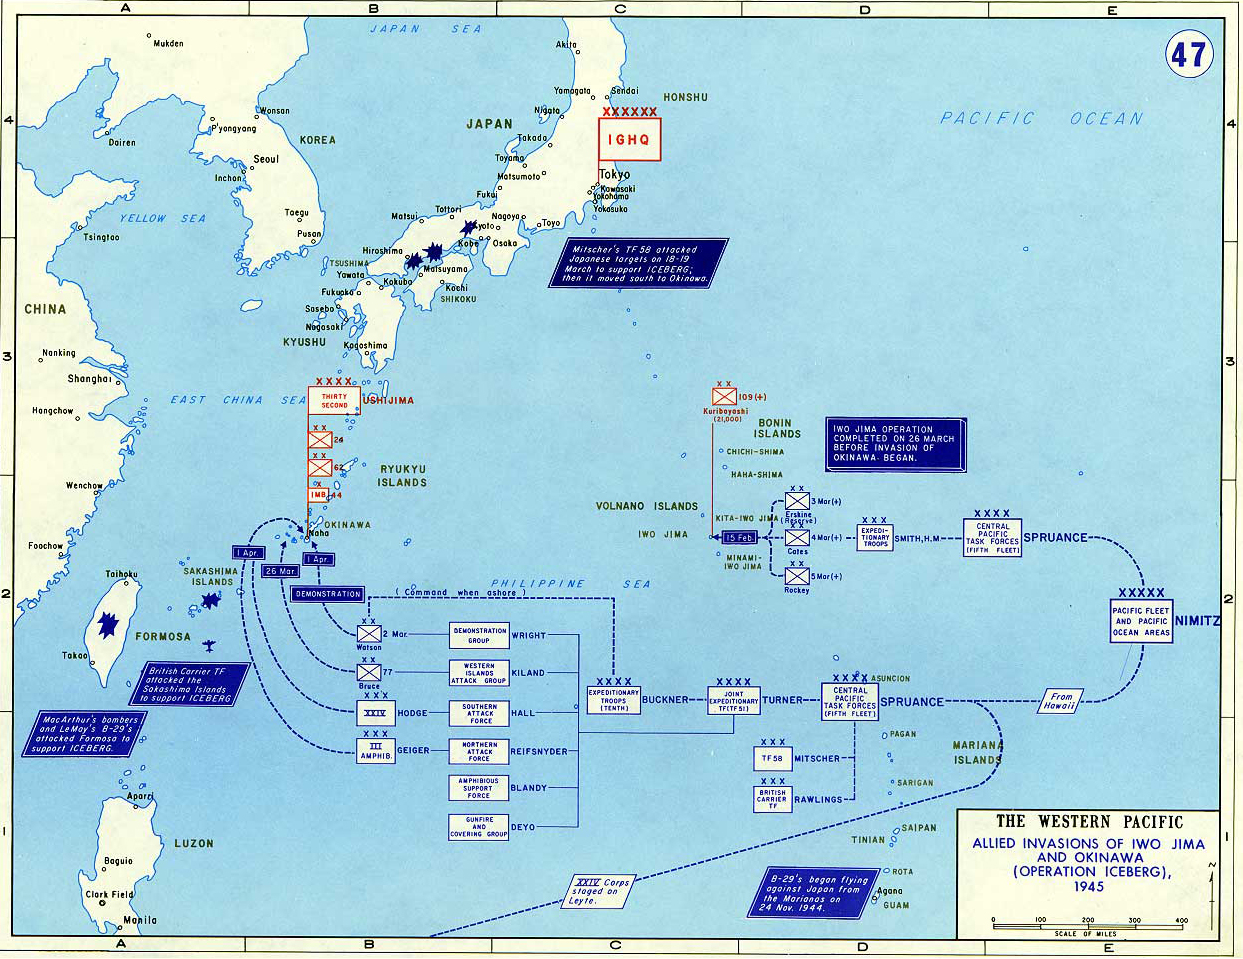 Map of World War II: The Western Pacific 1945. Allied Invasions of Iwo Jima and Okinawa (Operation Iceberg) 1945.